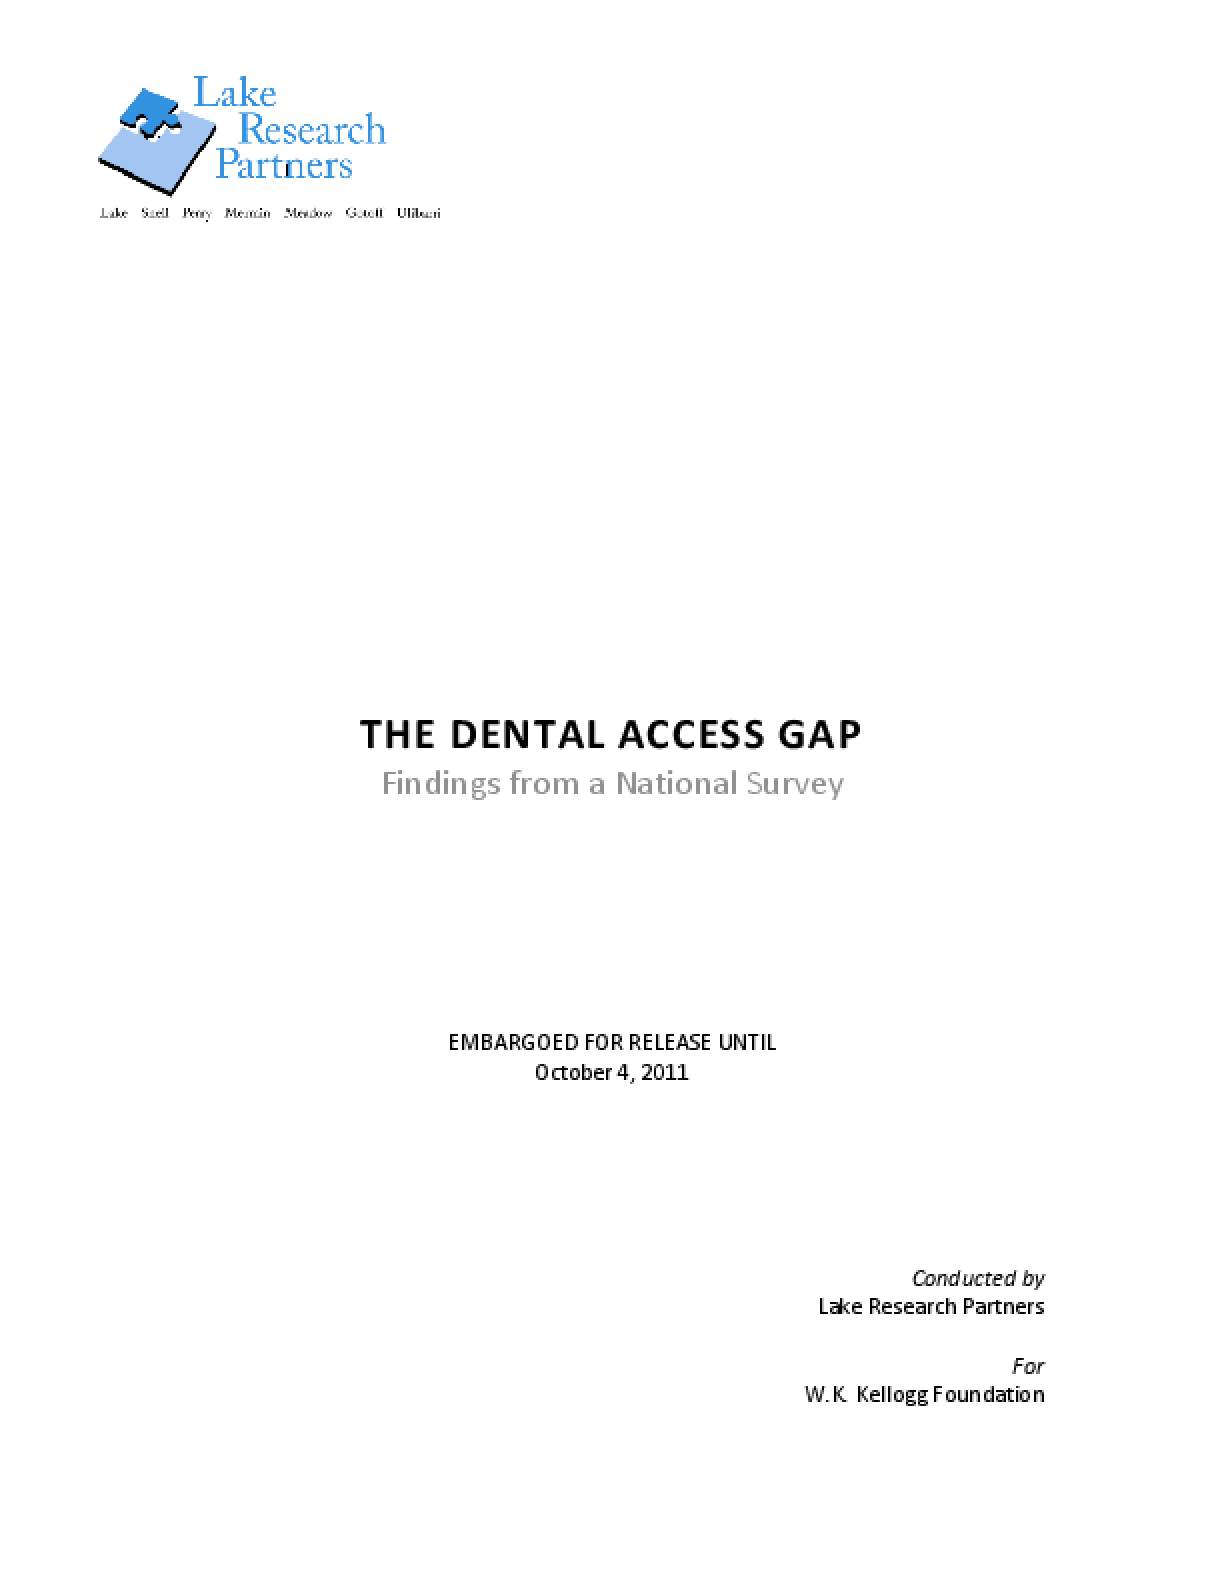 The Dental Access Gap: Findings From a National Survey